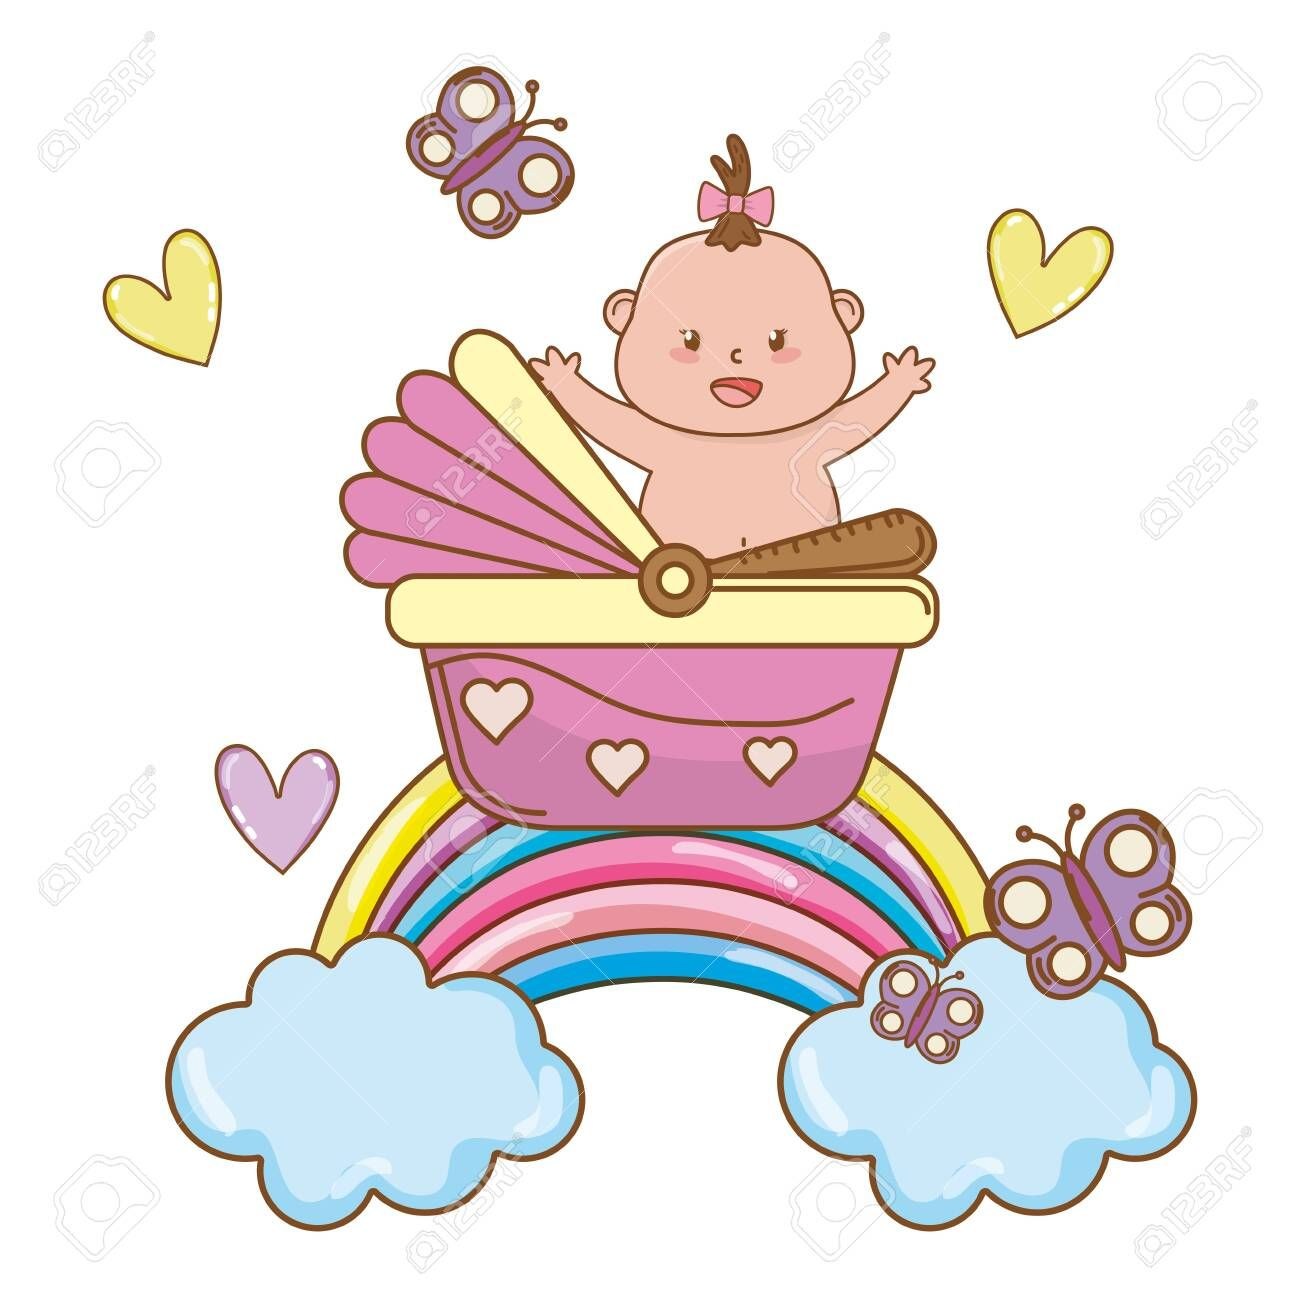 cute baby shower baby with babycare elements cartoon